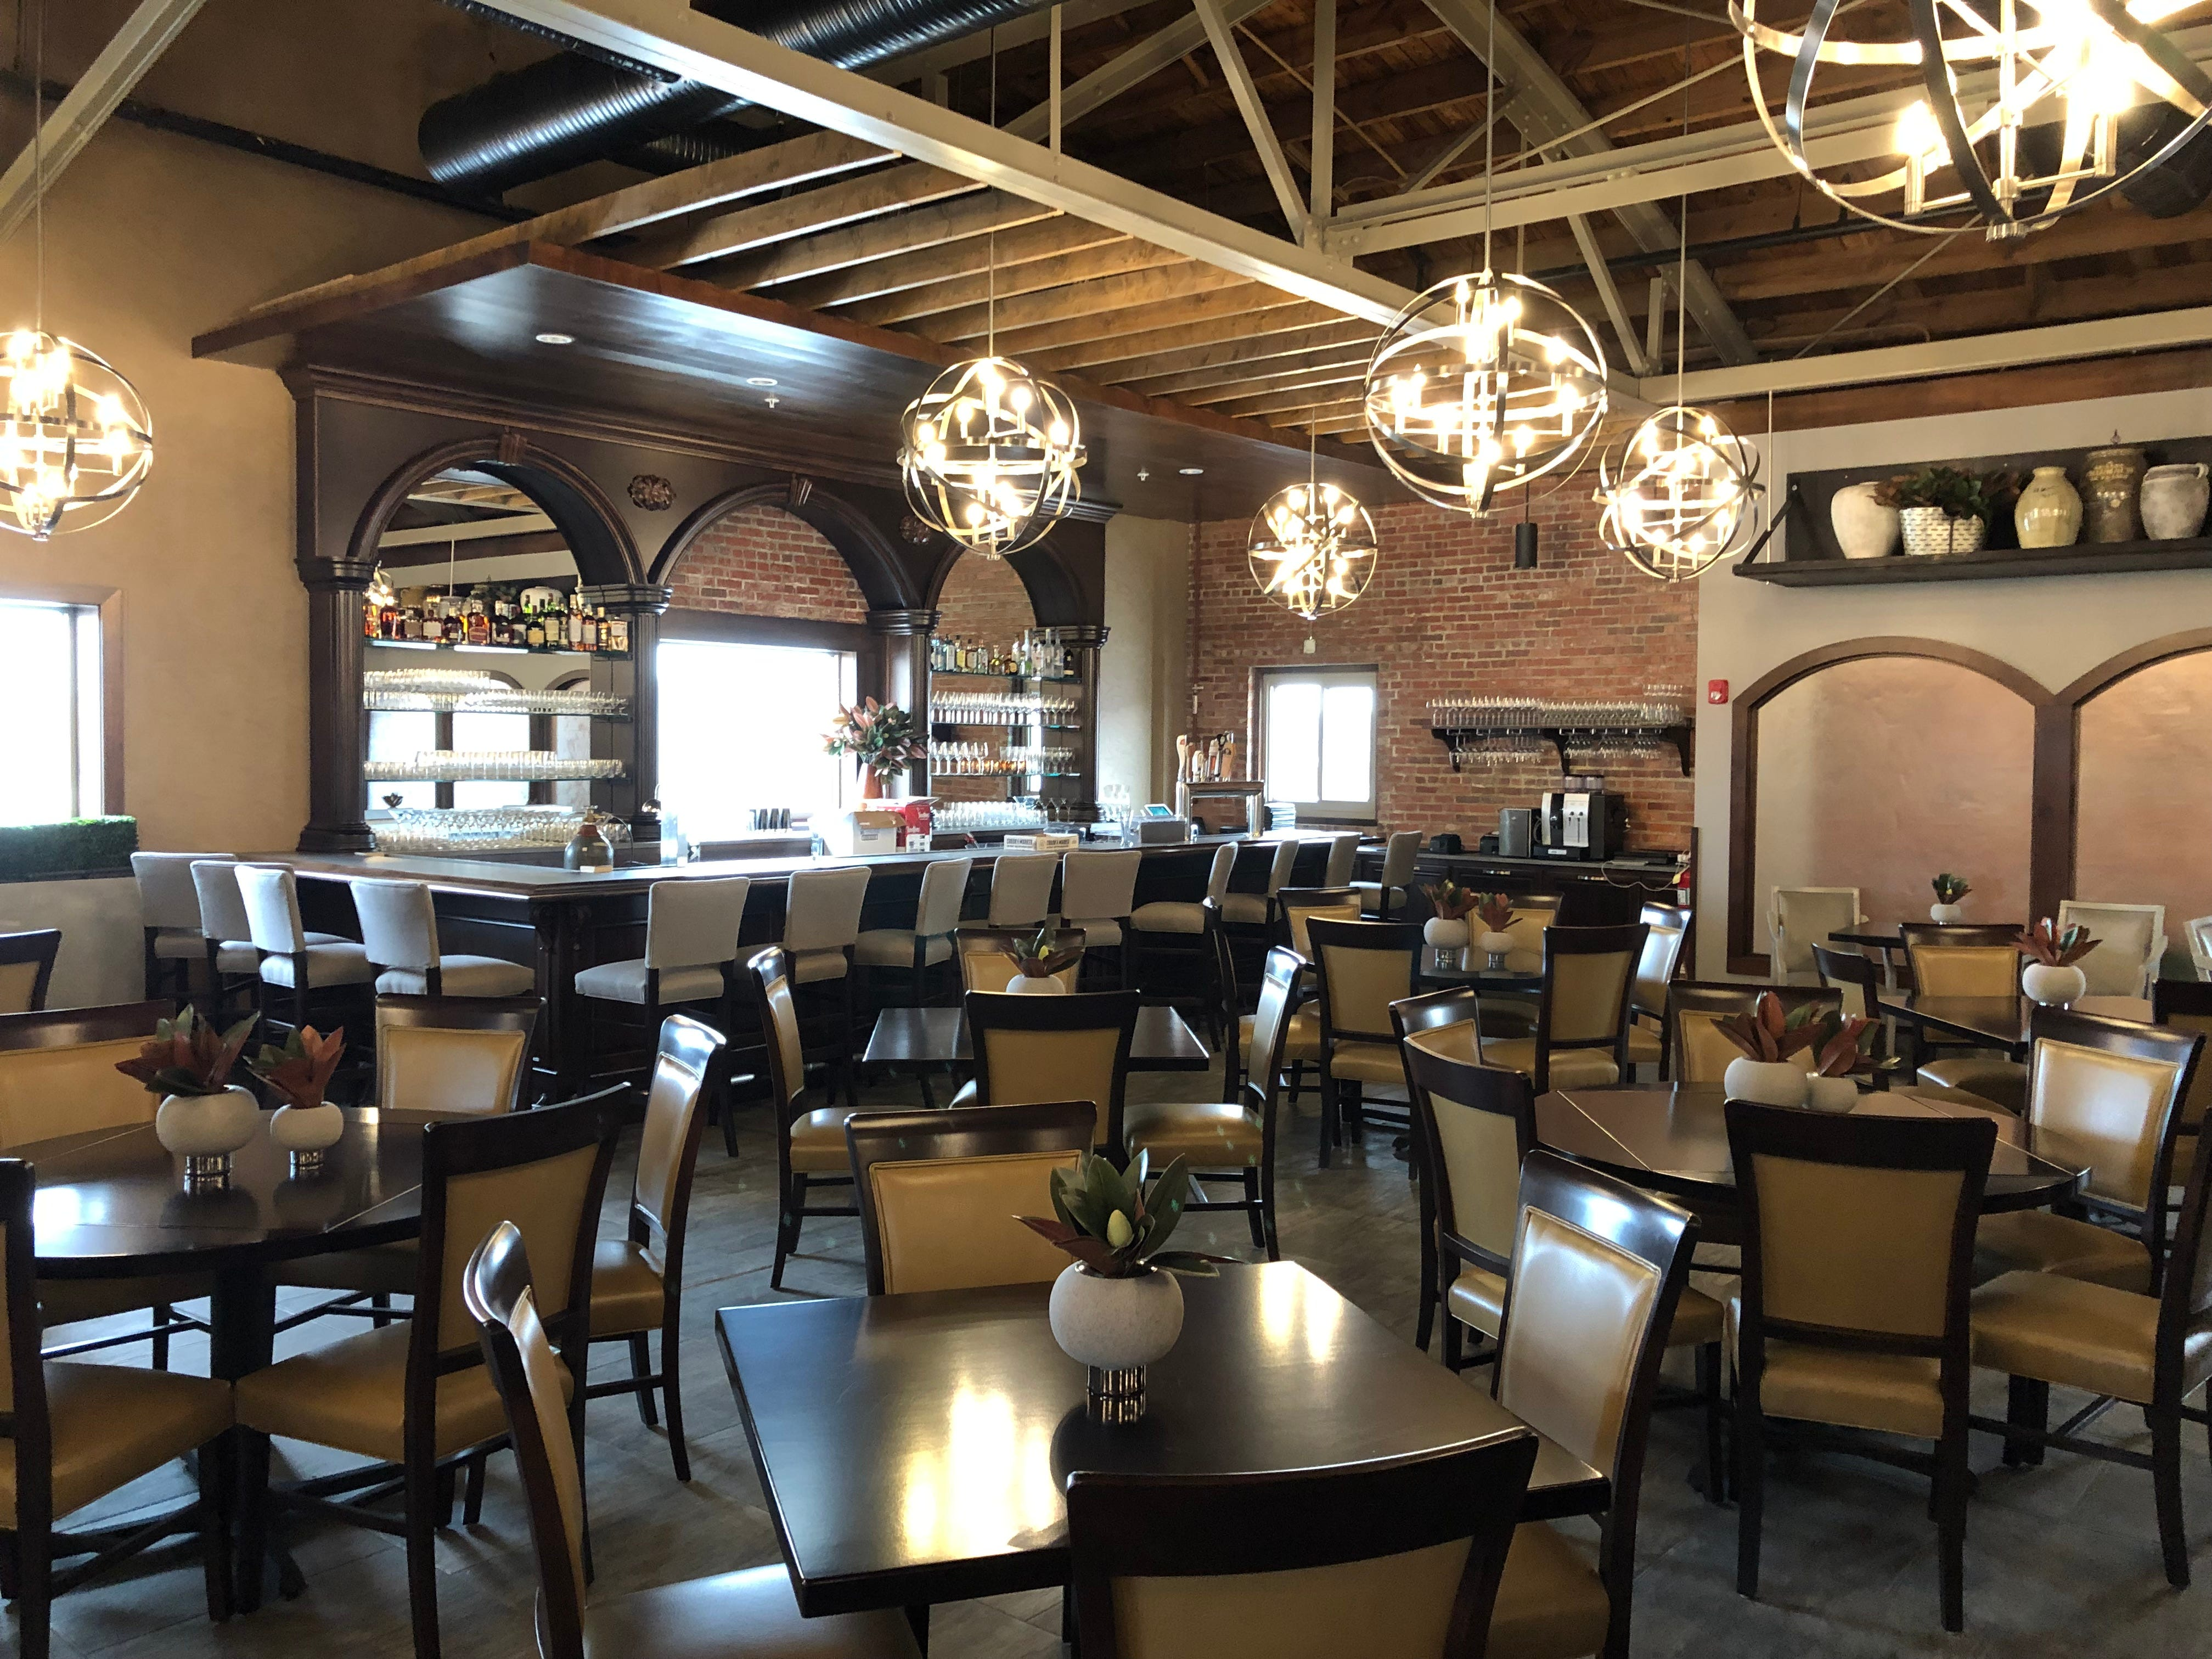 Hudson and Essex will include an upscale restaurant, set to open May 8.